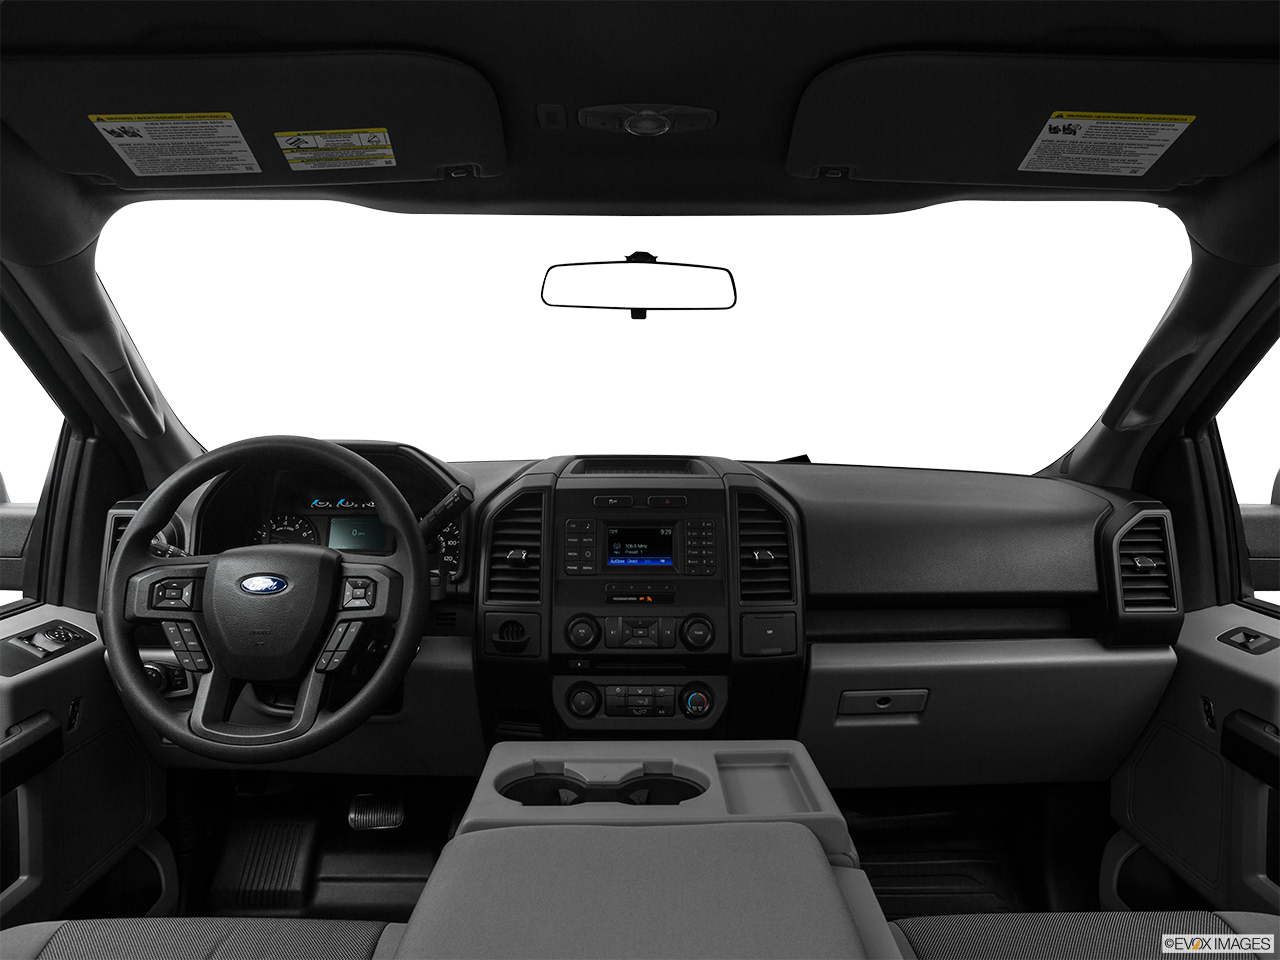 Interior View Of 2016 Ford F-150 in Franklin